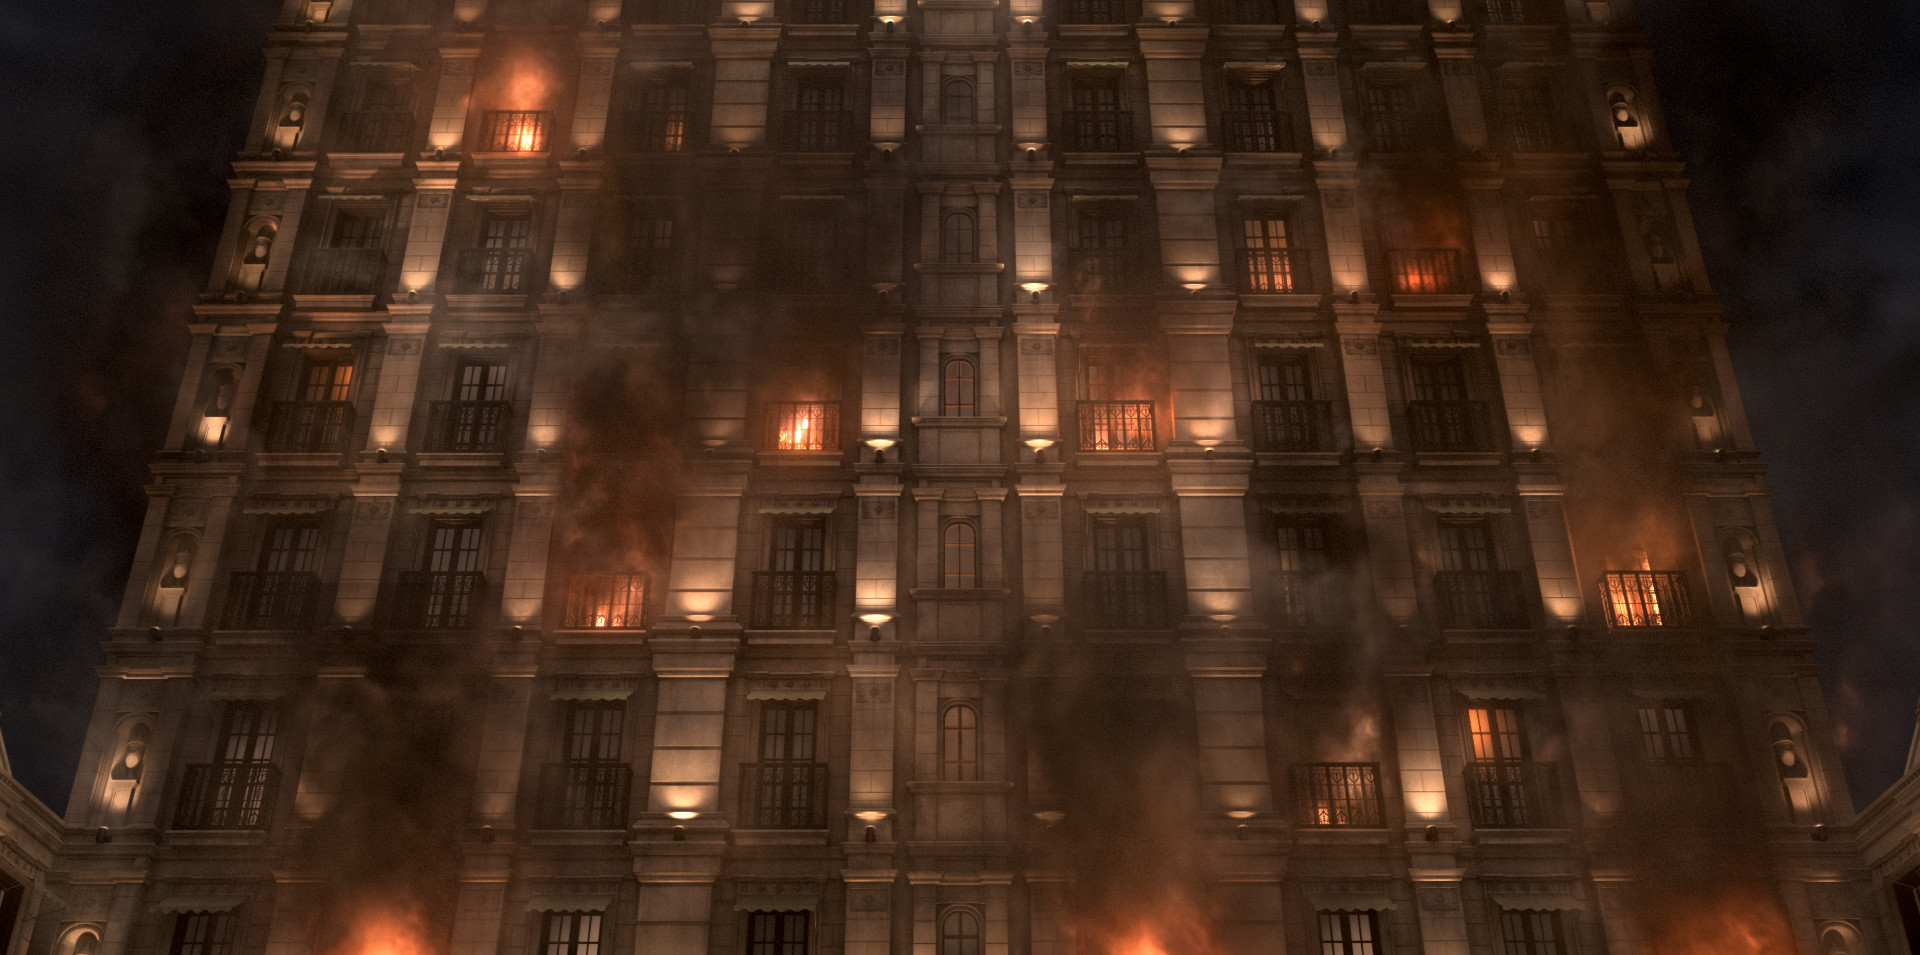 comped matte painting